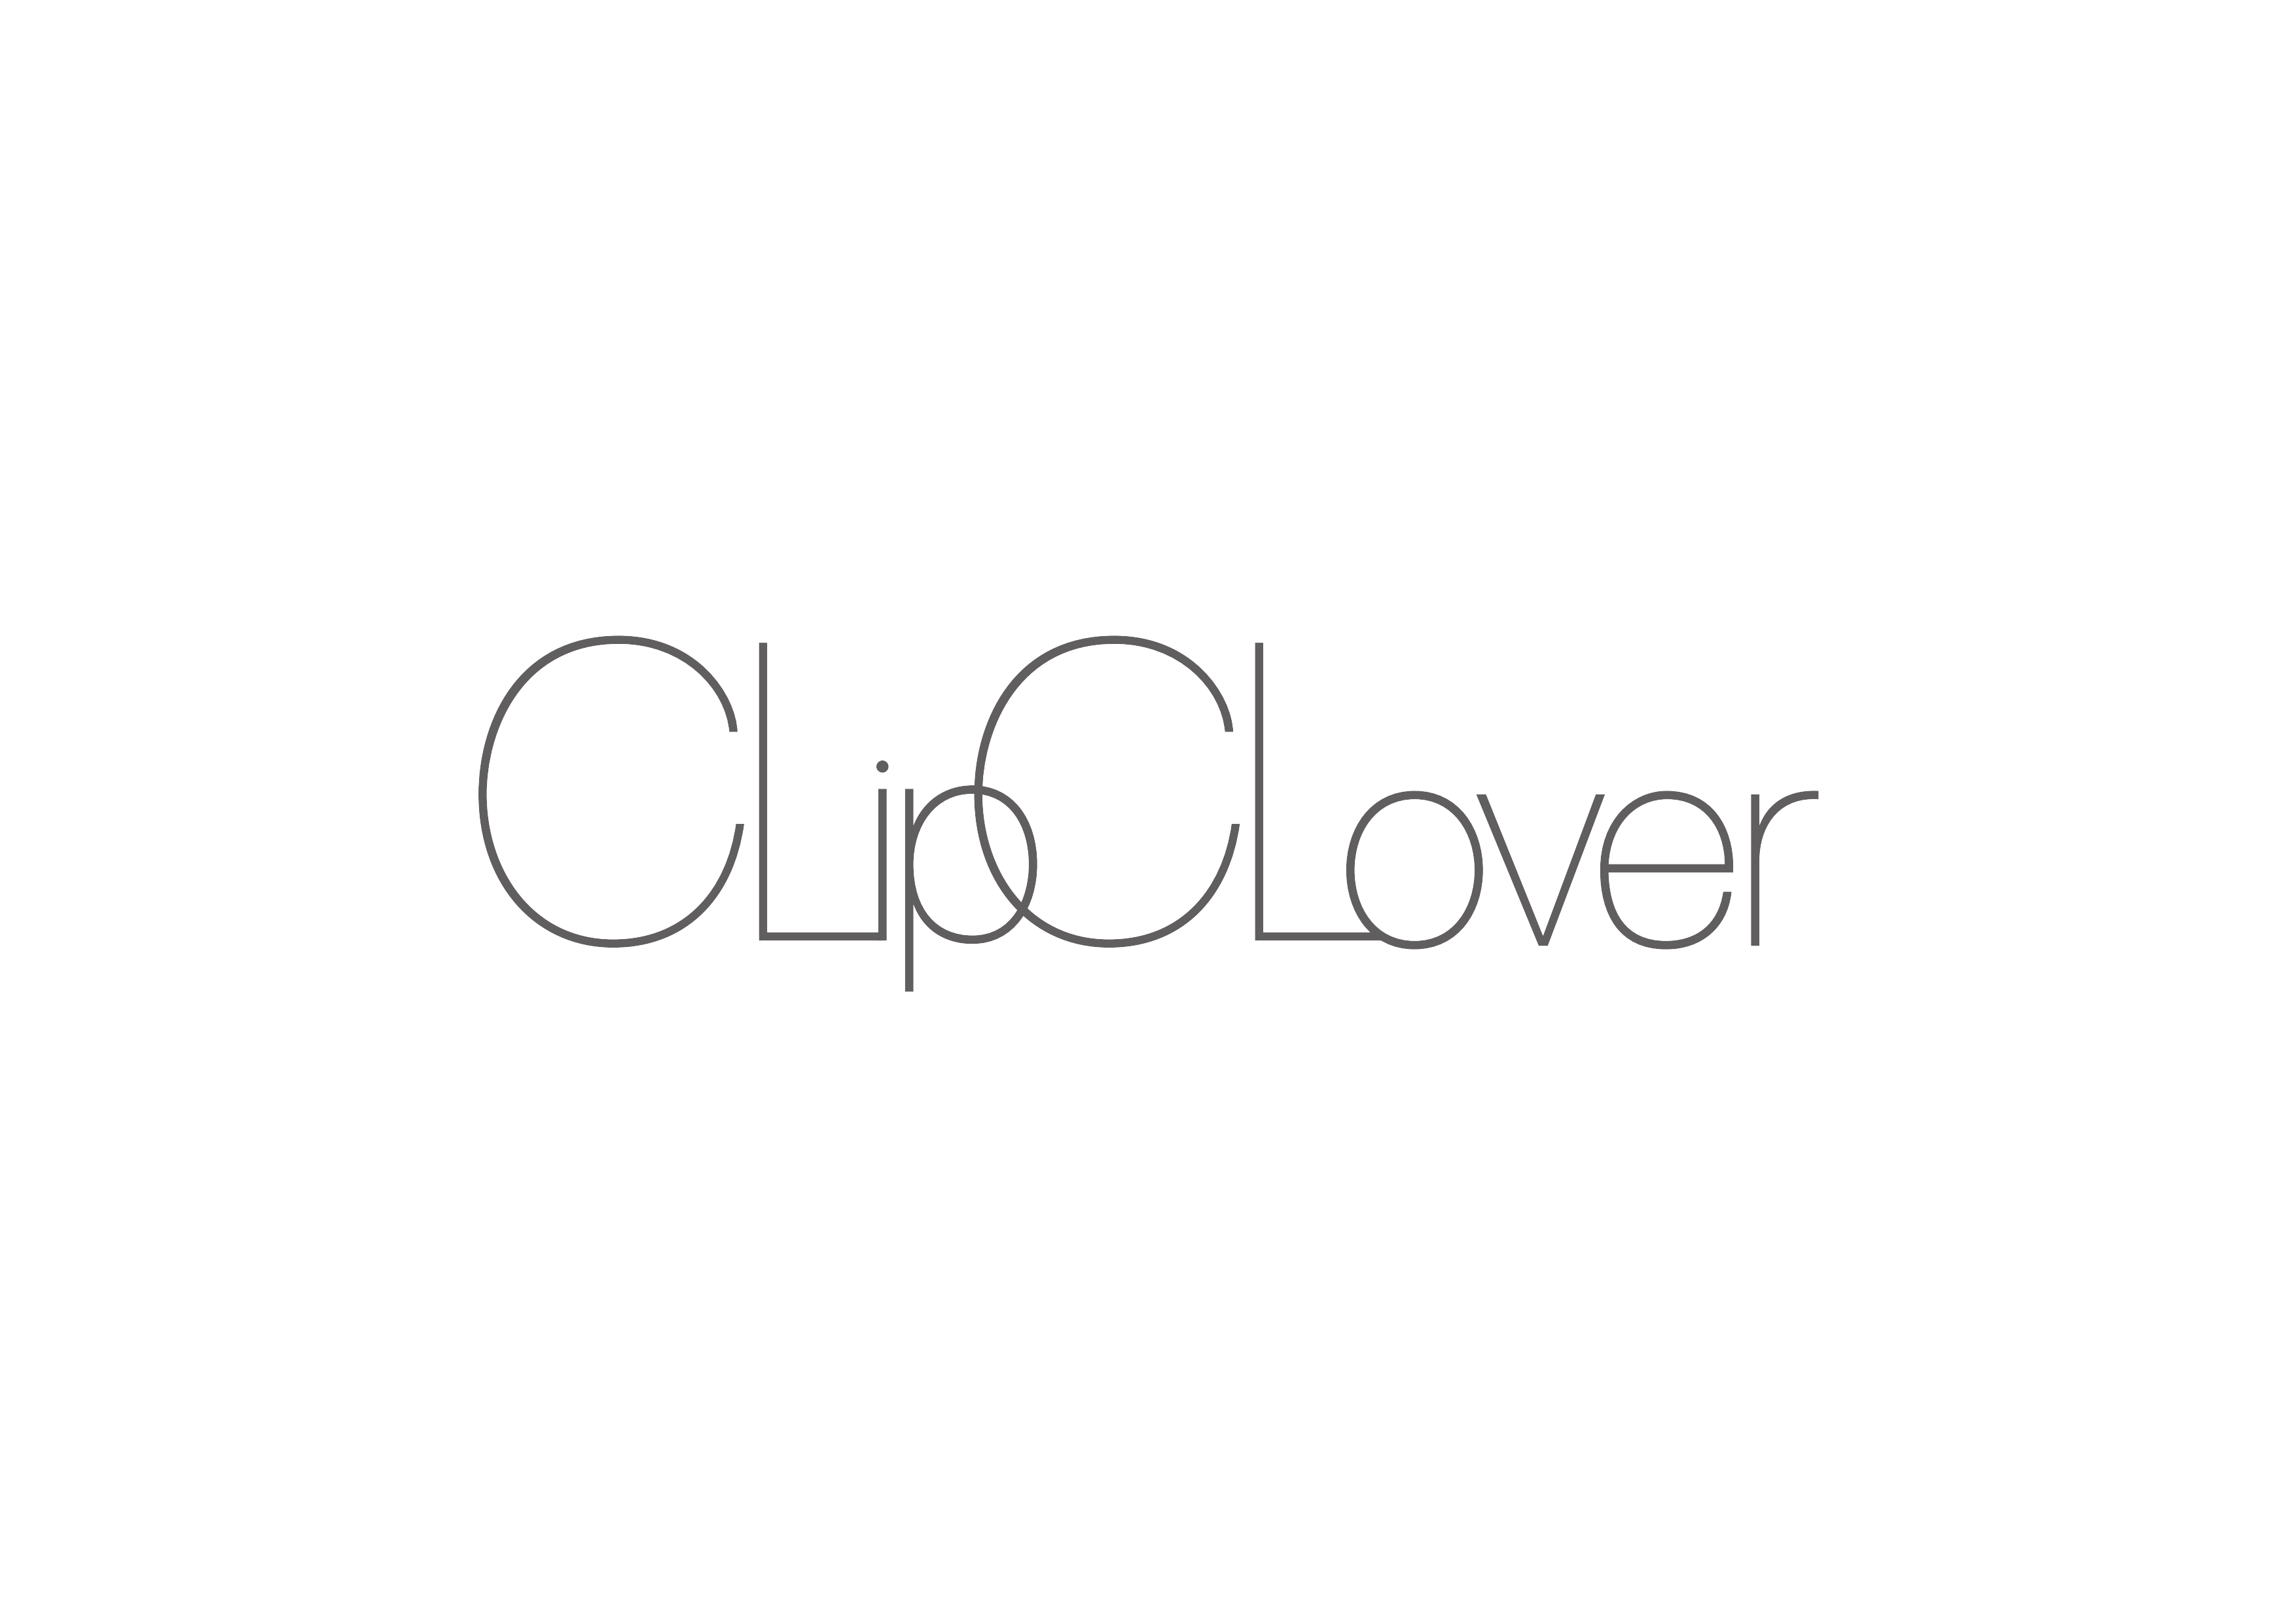 clipclover.PNG